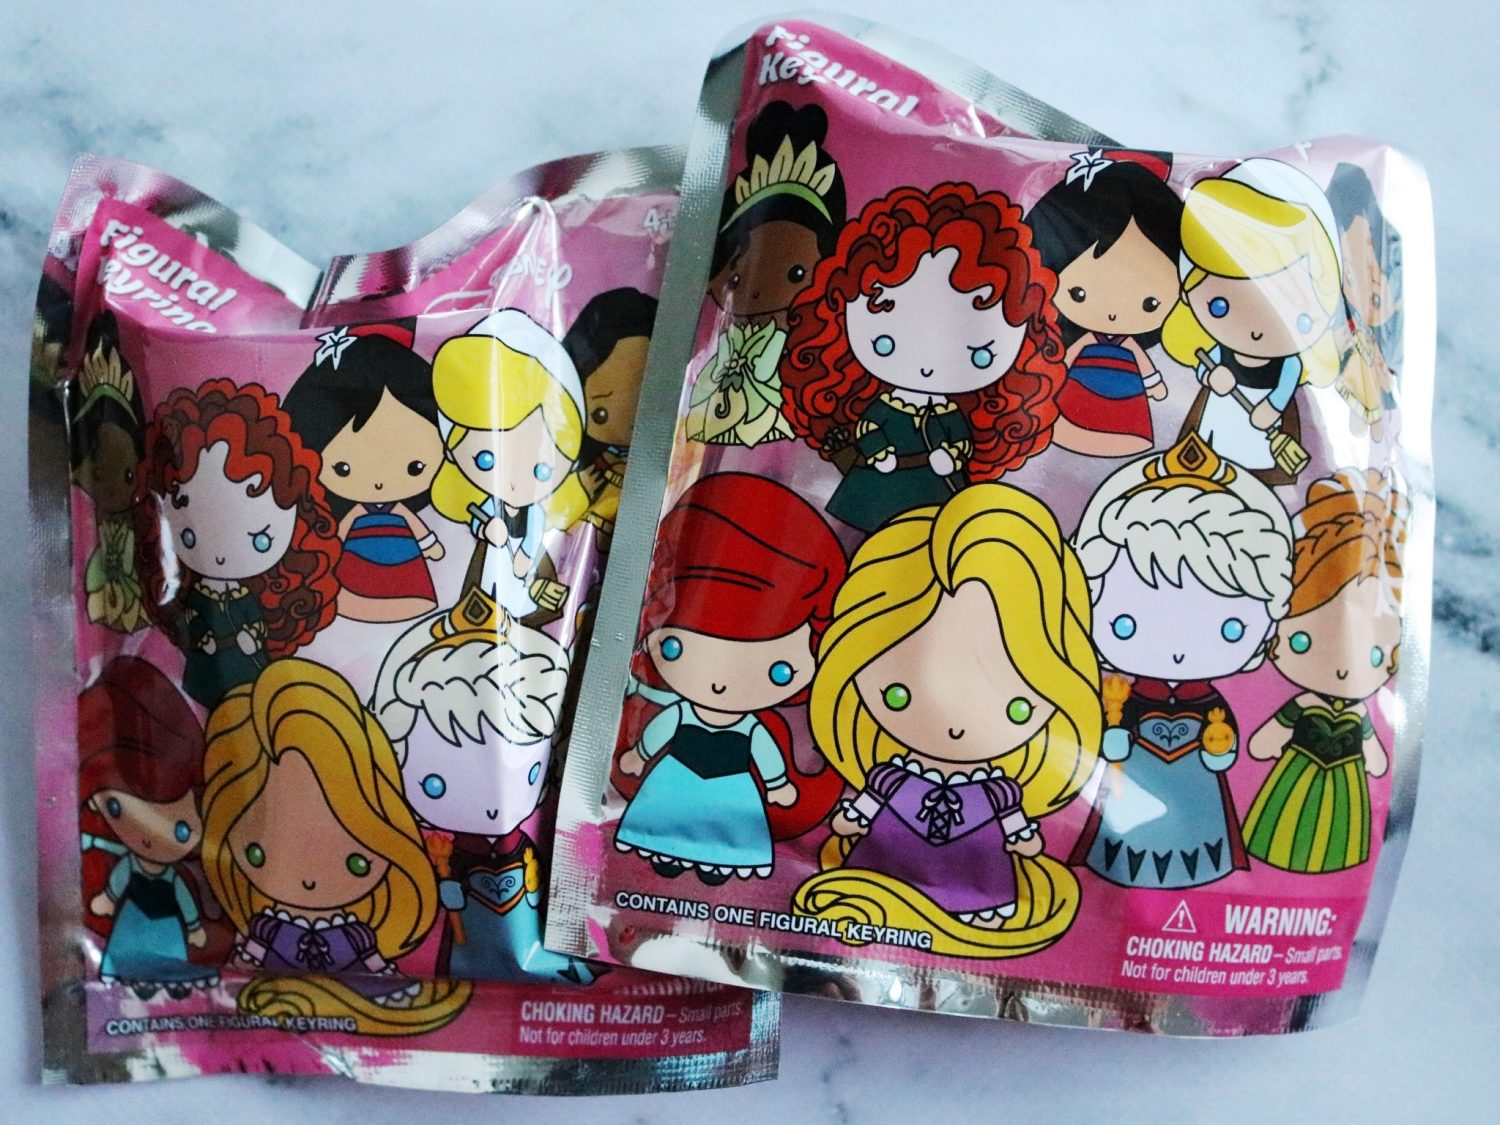 Disney Princess Series 7 Figural Keyrings